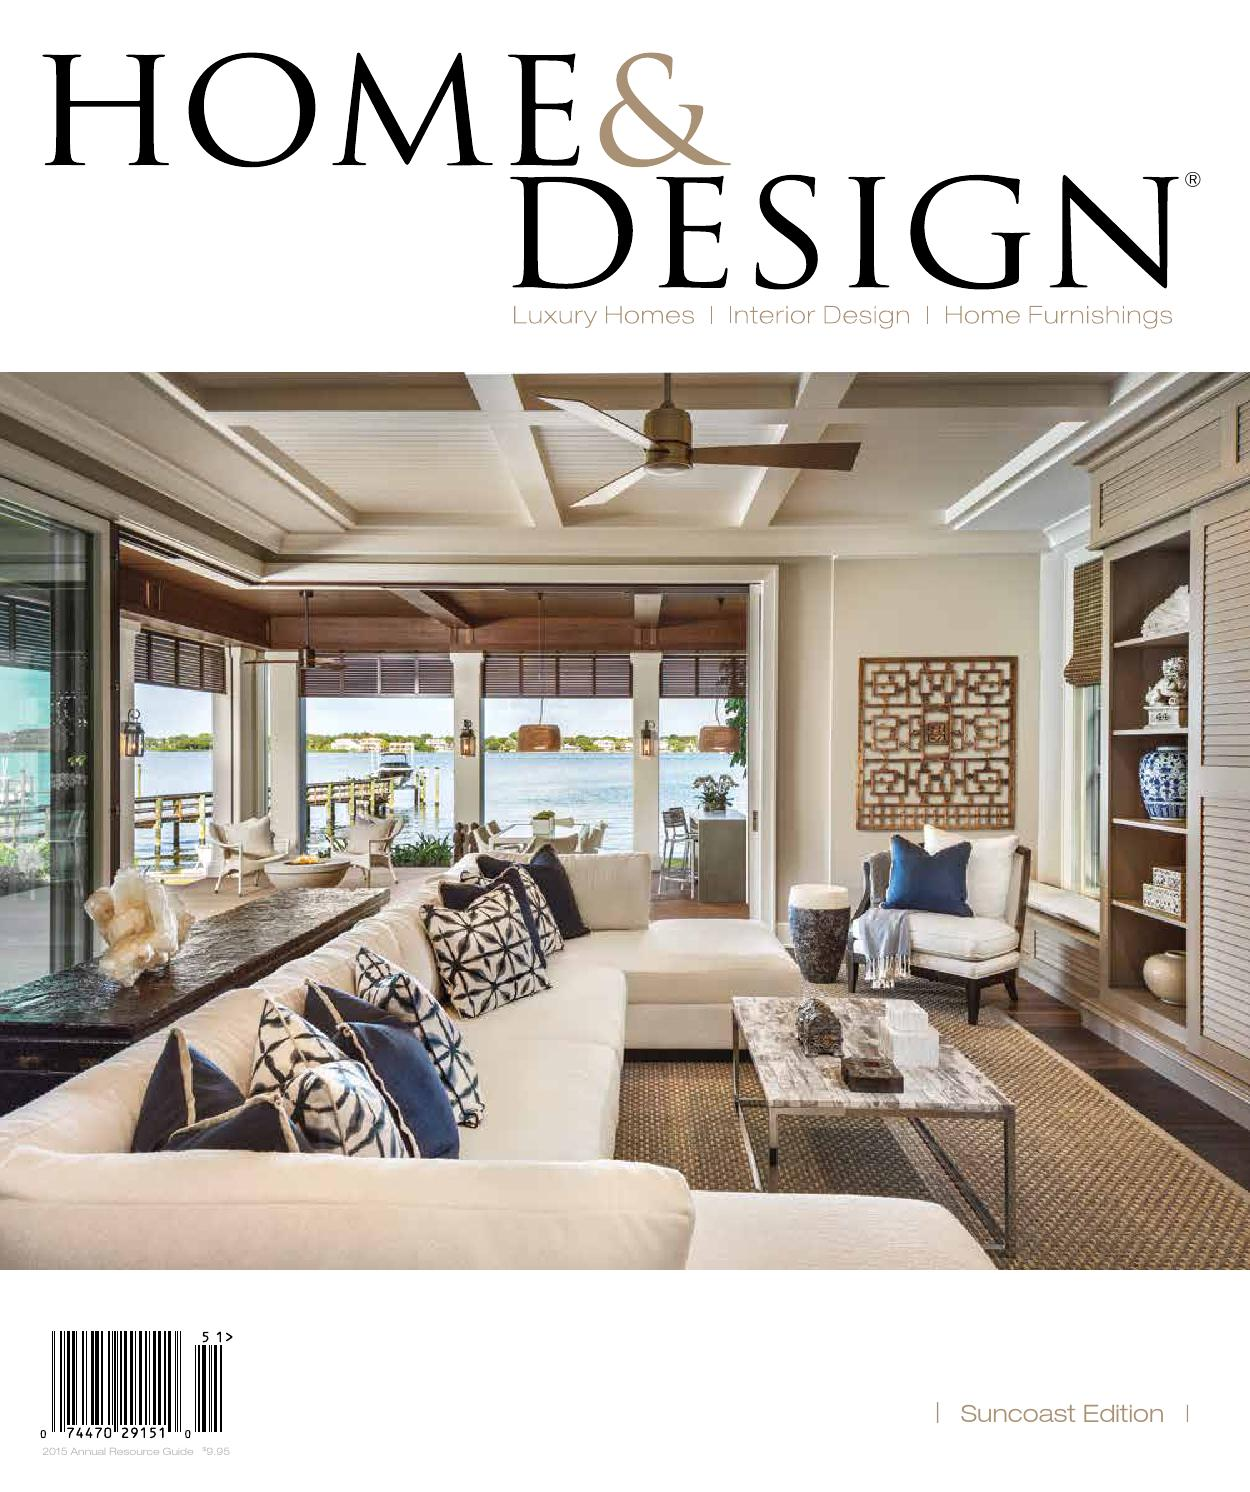 Home design magazine annual resource guide 2015 for Home designs 2015